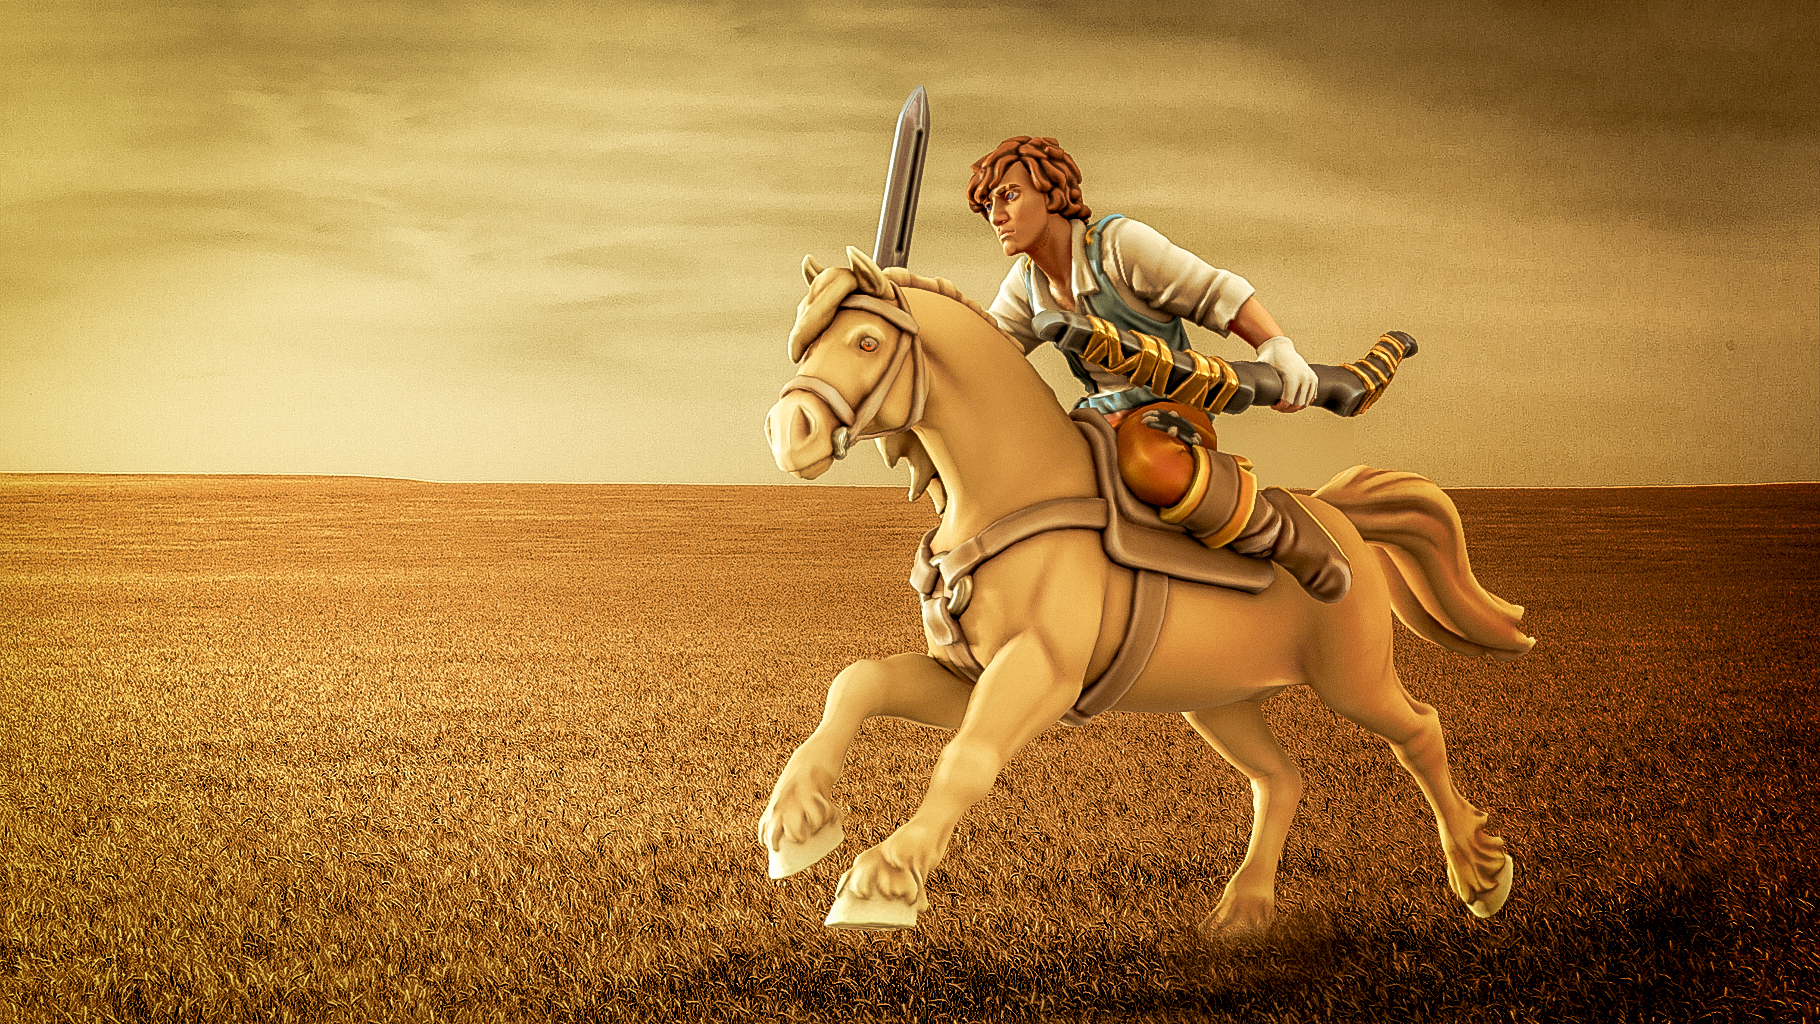 Augustus Might on Horse - Cinematic - FINAL.jpg